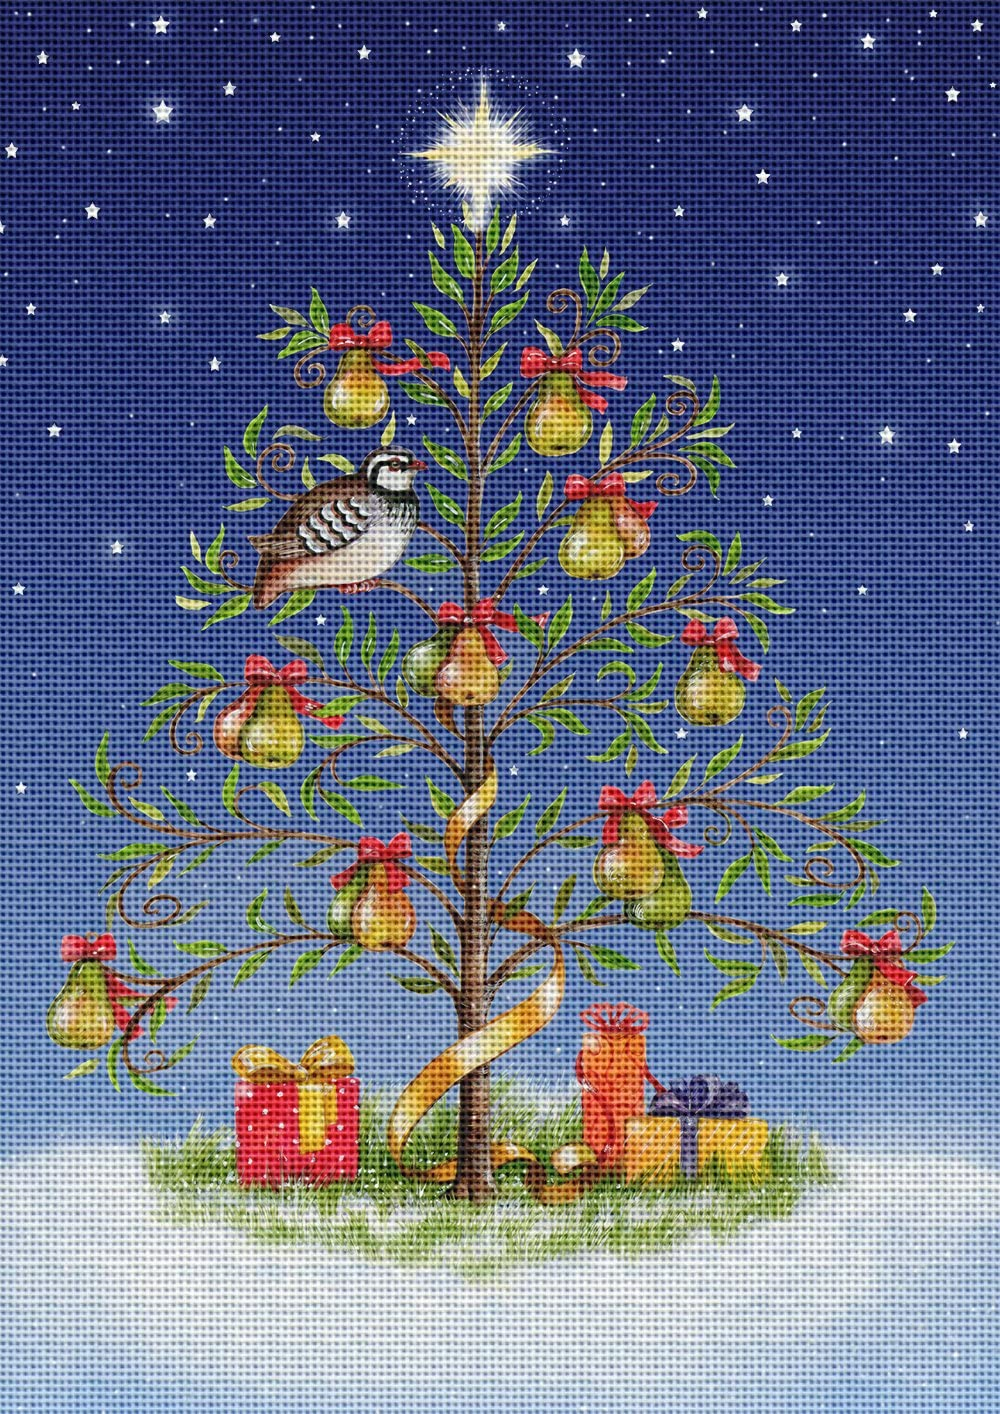 Art Needlepoint Christmas Partridge in a Pear Tree by Debbie Cook Needlepoint Canvas